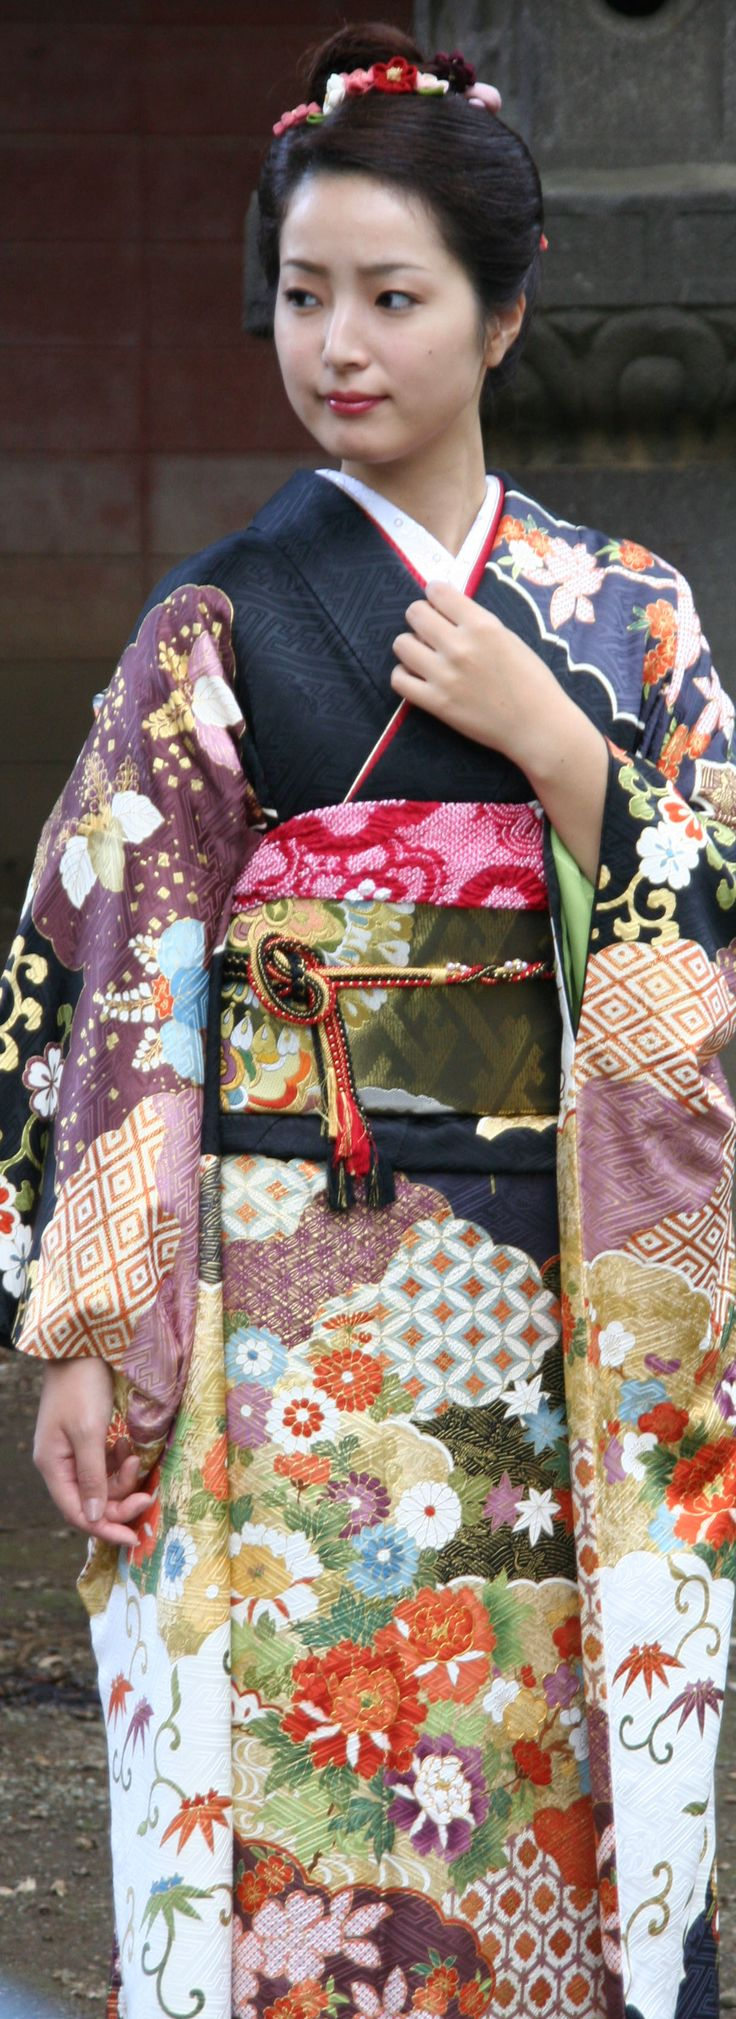 read about print on print rules used in Japan